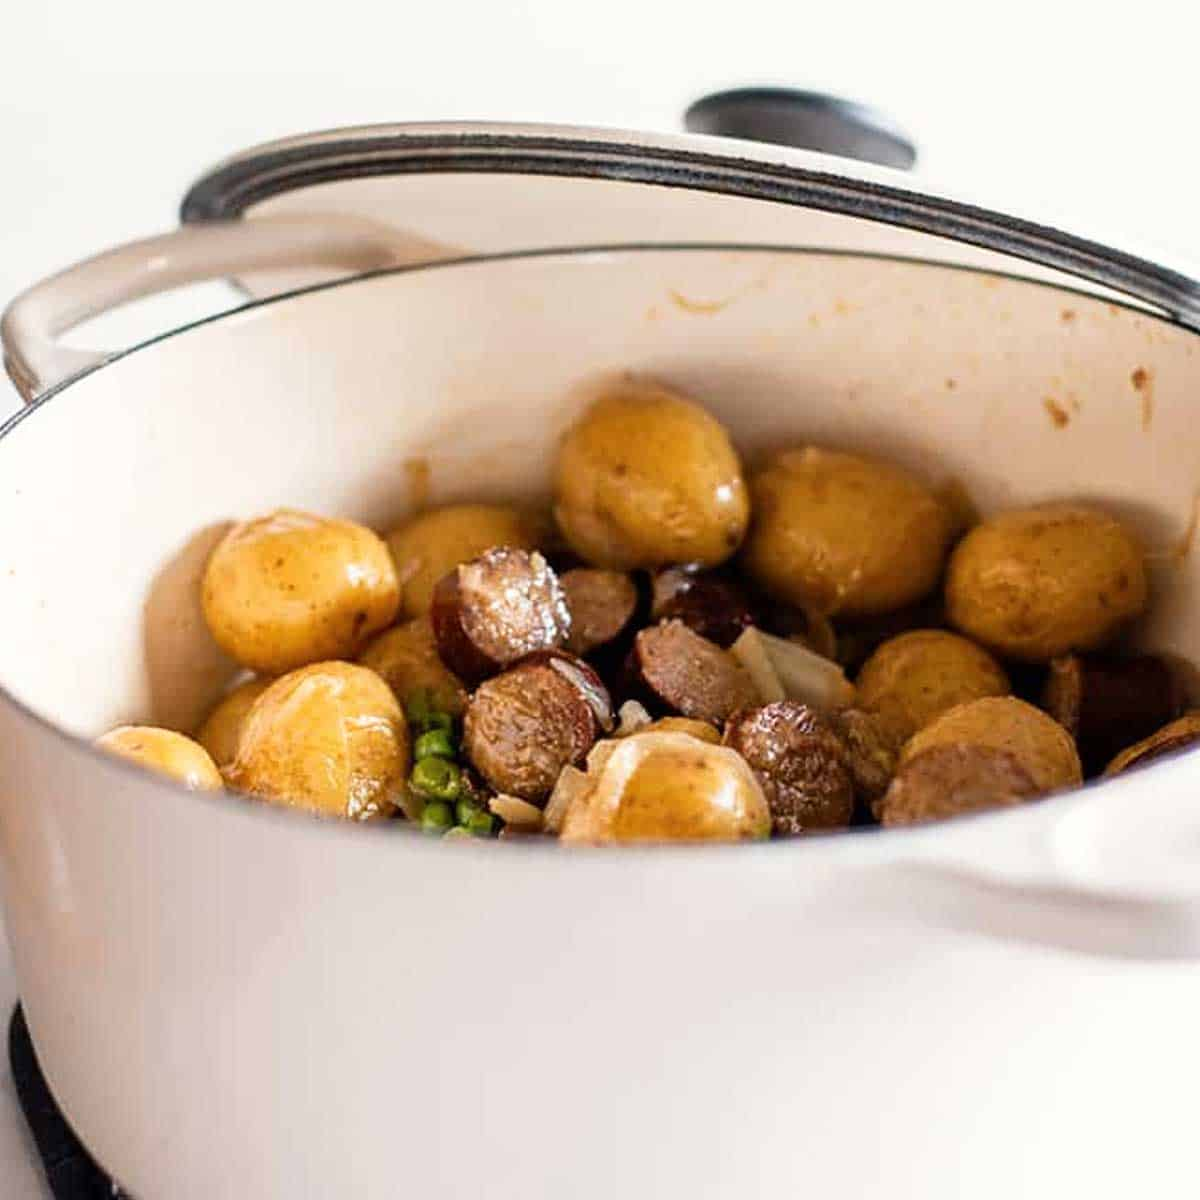 Smothered potatoes and sausage in a white Dutch oven